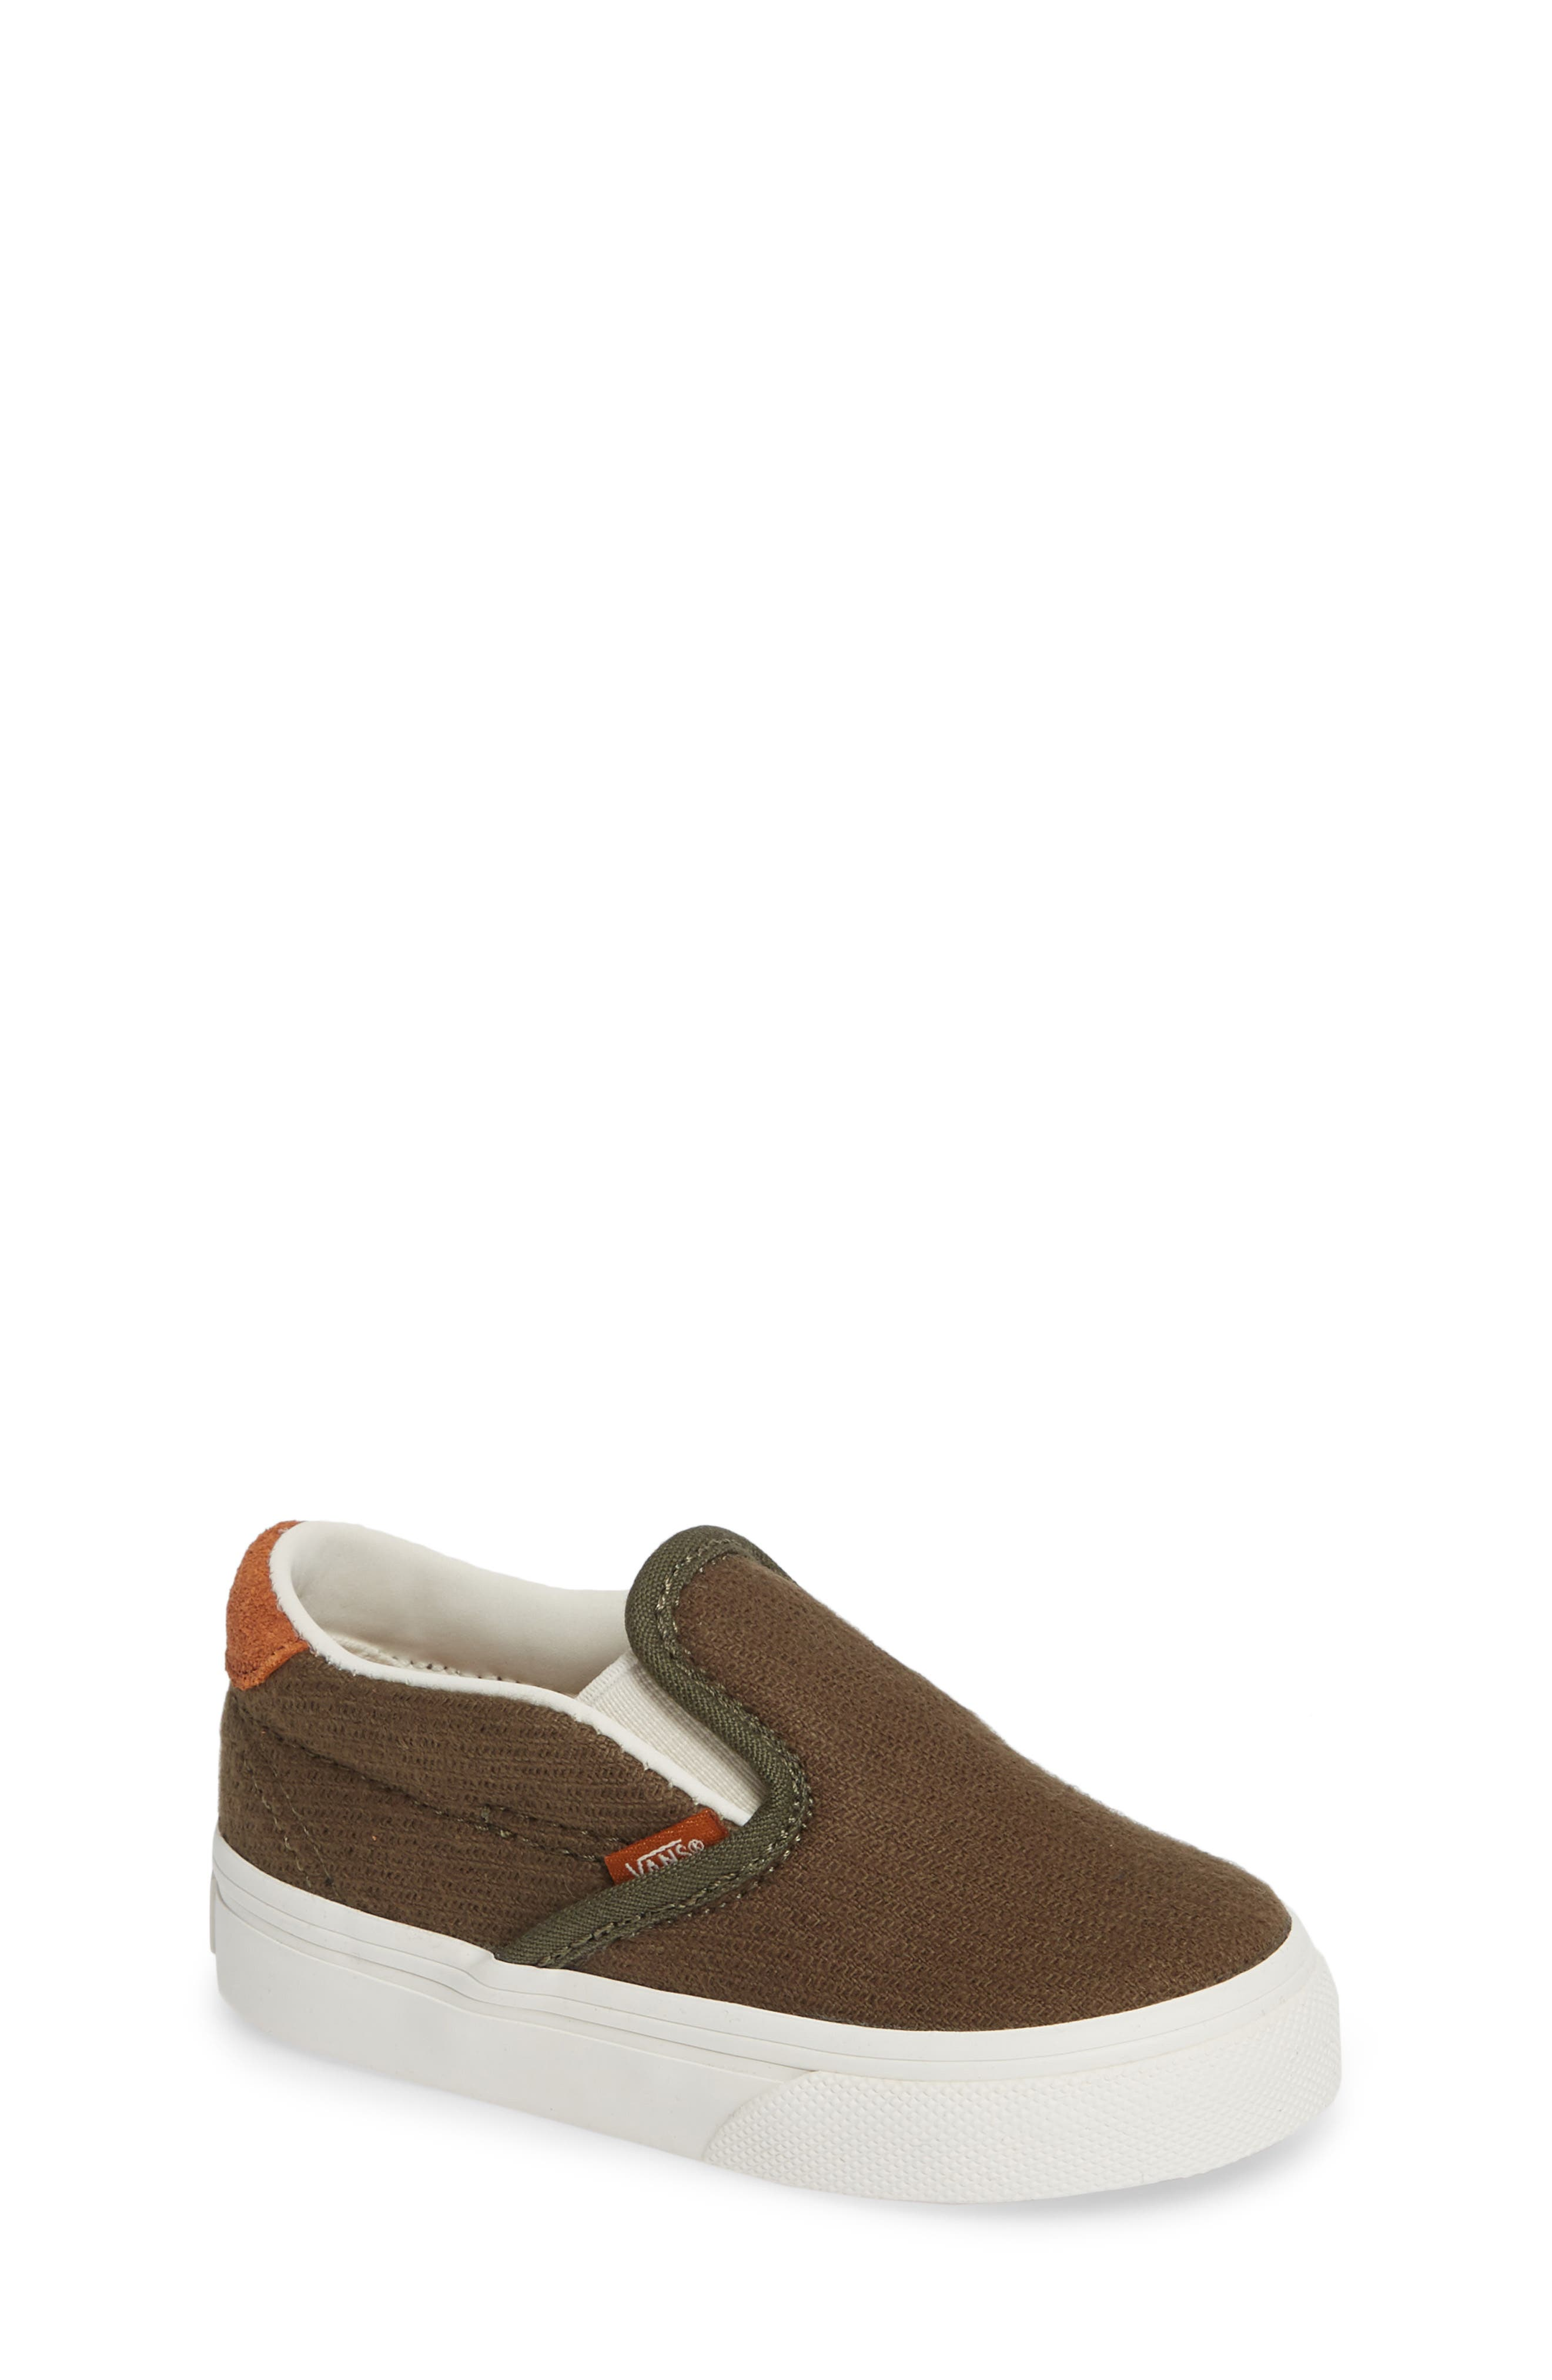 59 Slip-On Sneaker,                             Main thumbnail 1, color,                             FLANNEL DUSTY OLIVE